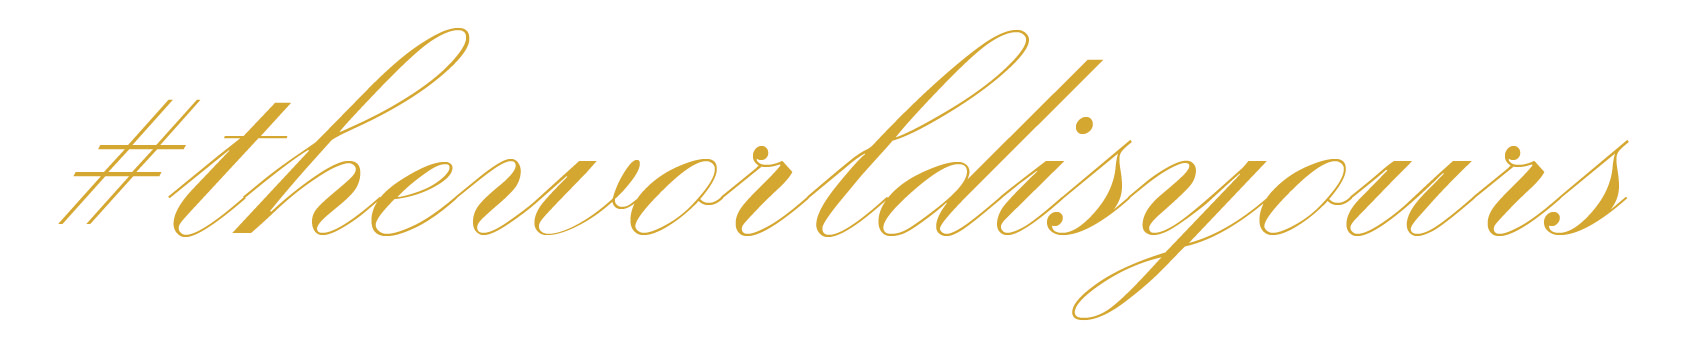 Hello Event - International Event & Wedding Planner - we make your dreams come true